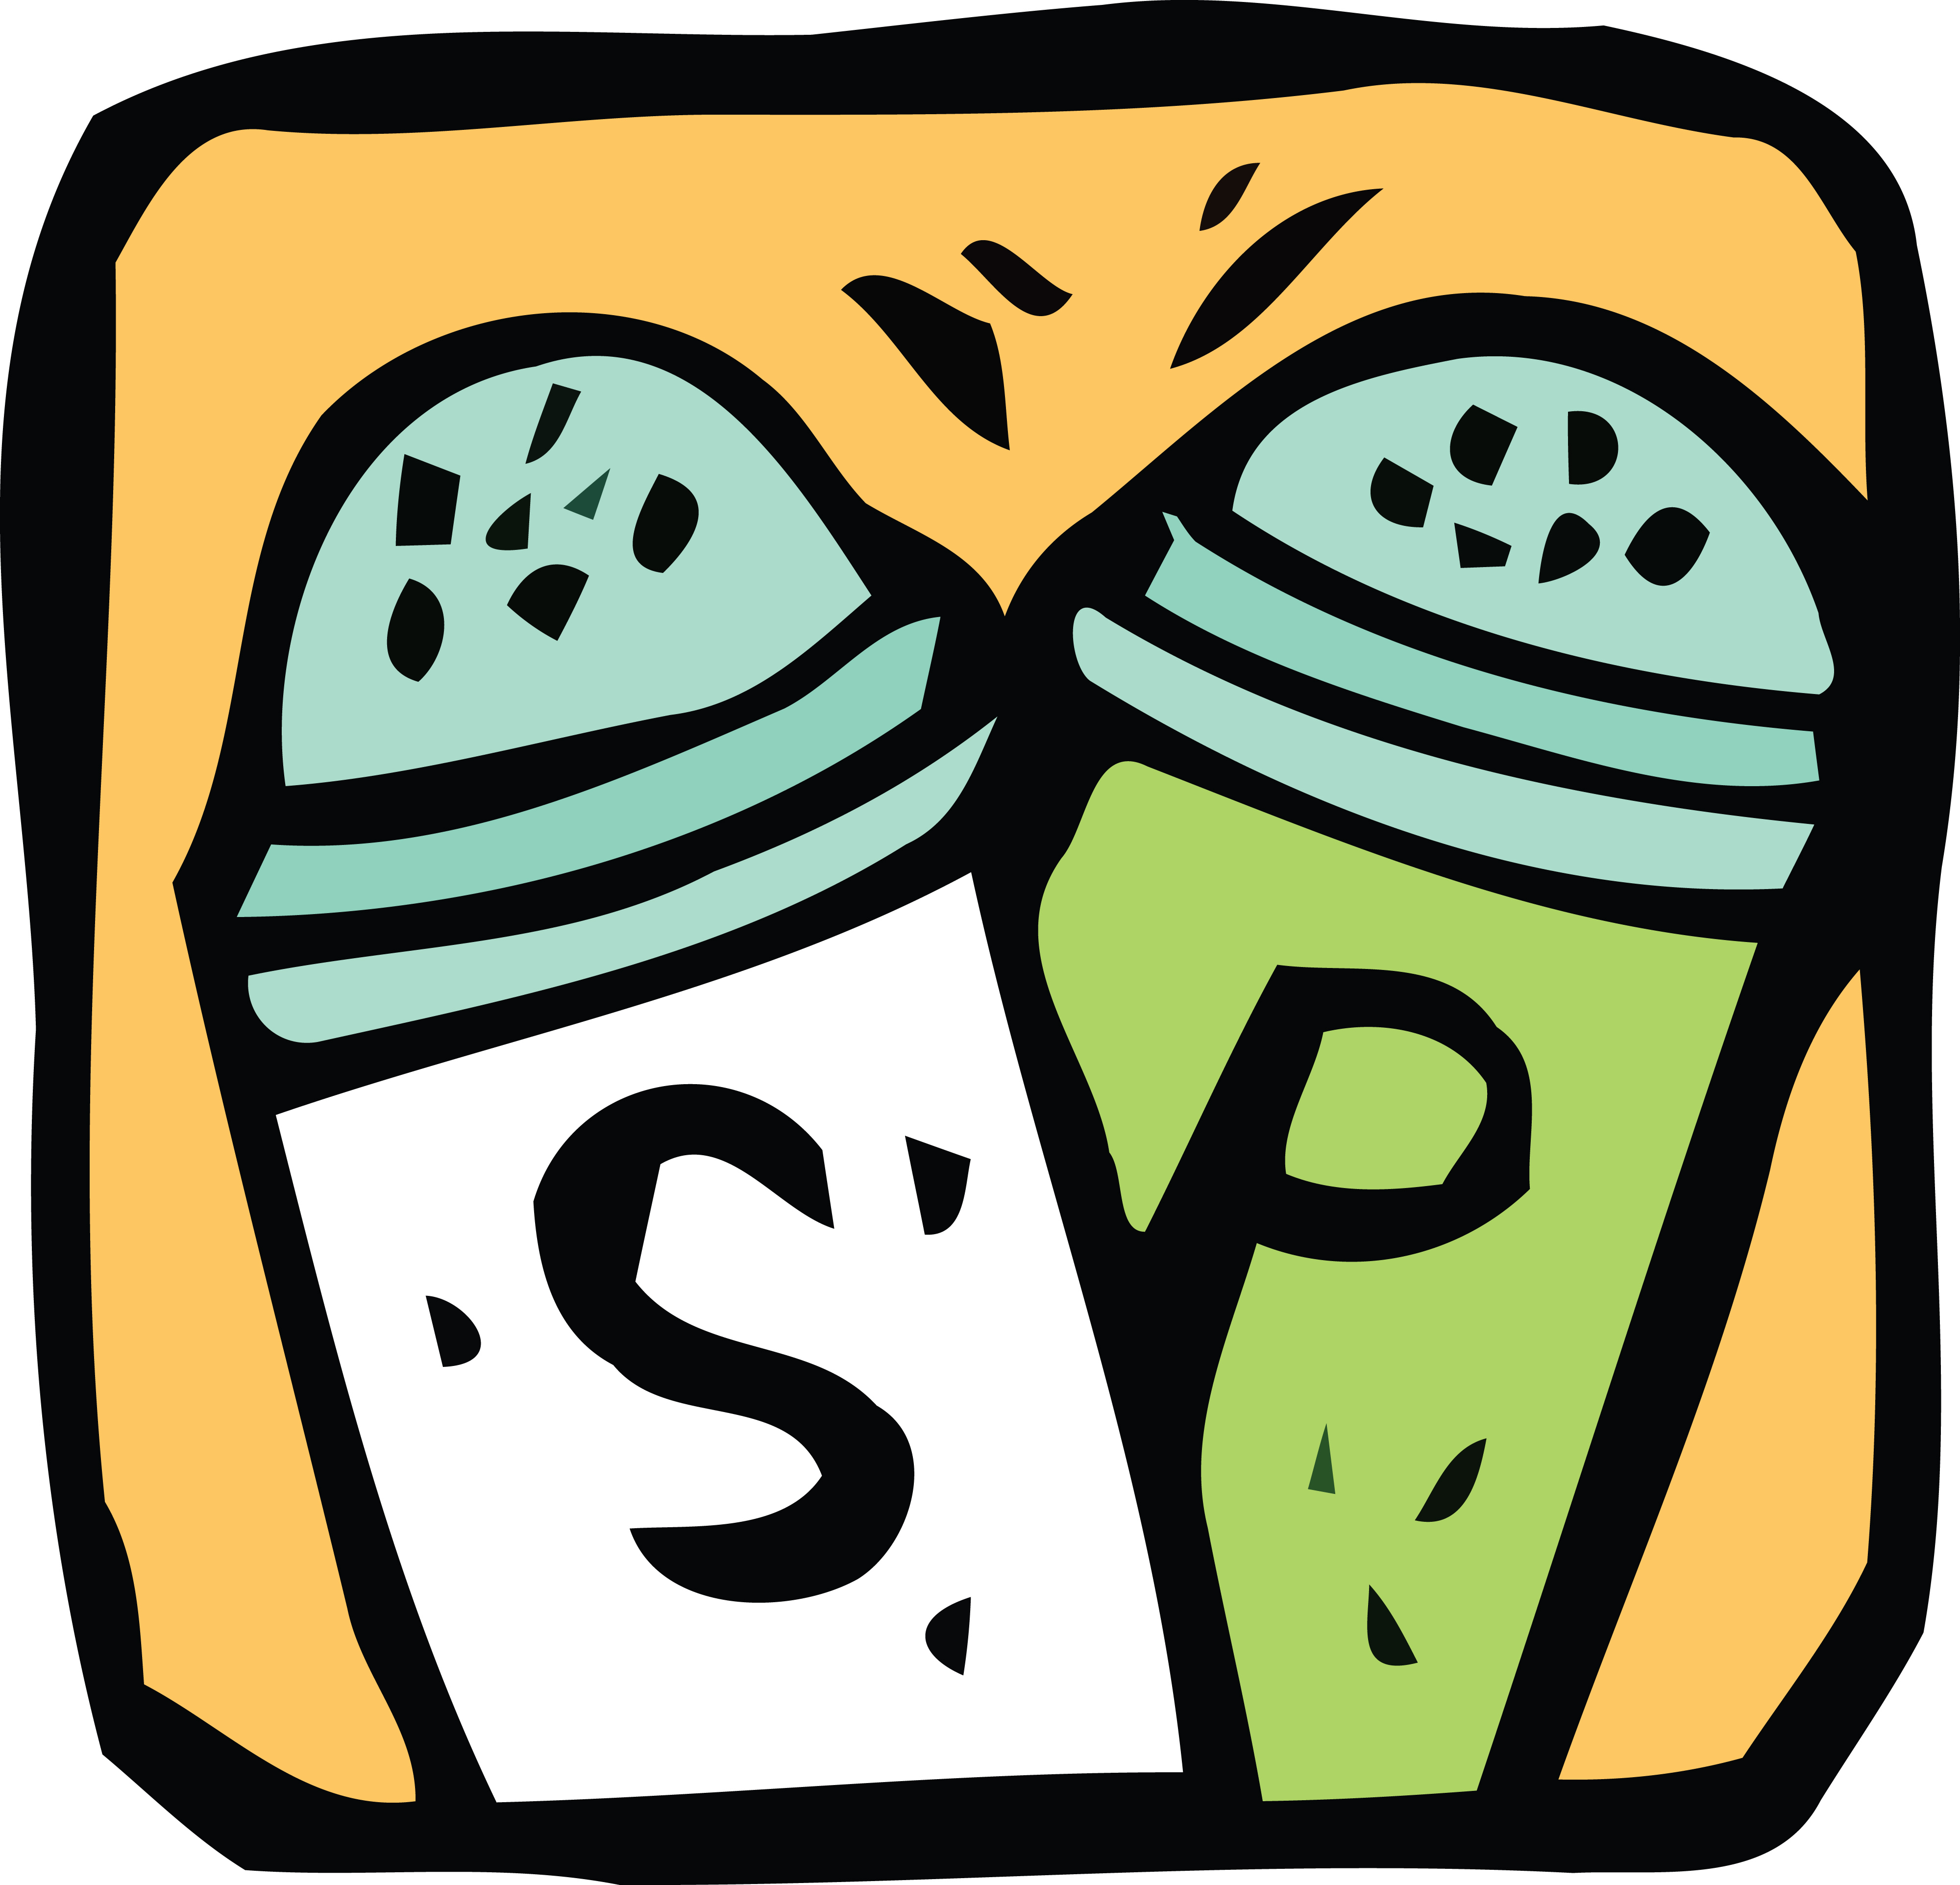 4000x3846 Free Clipart Of Salt And Pepper